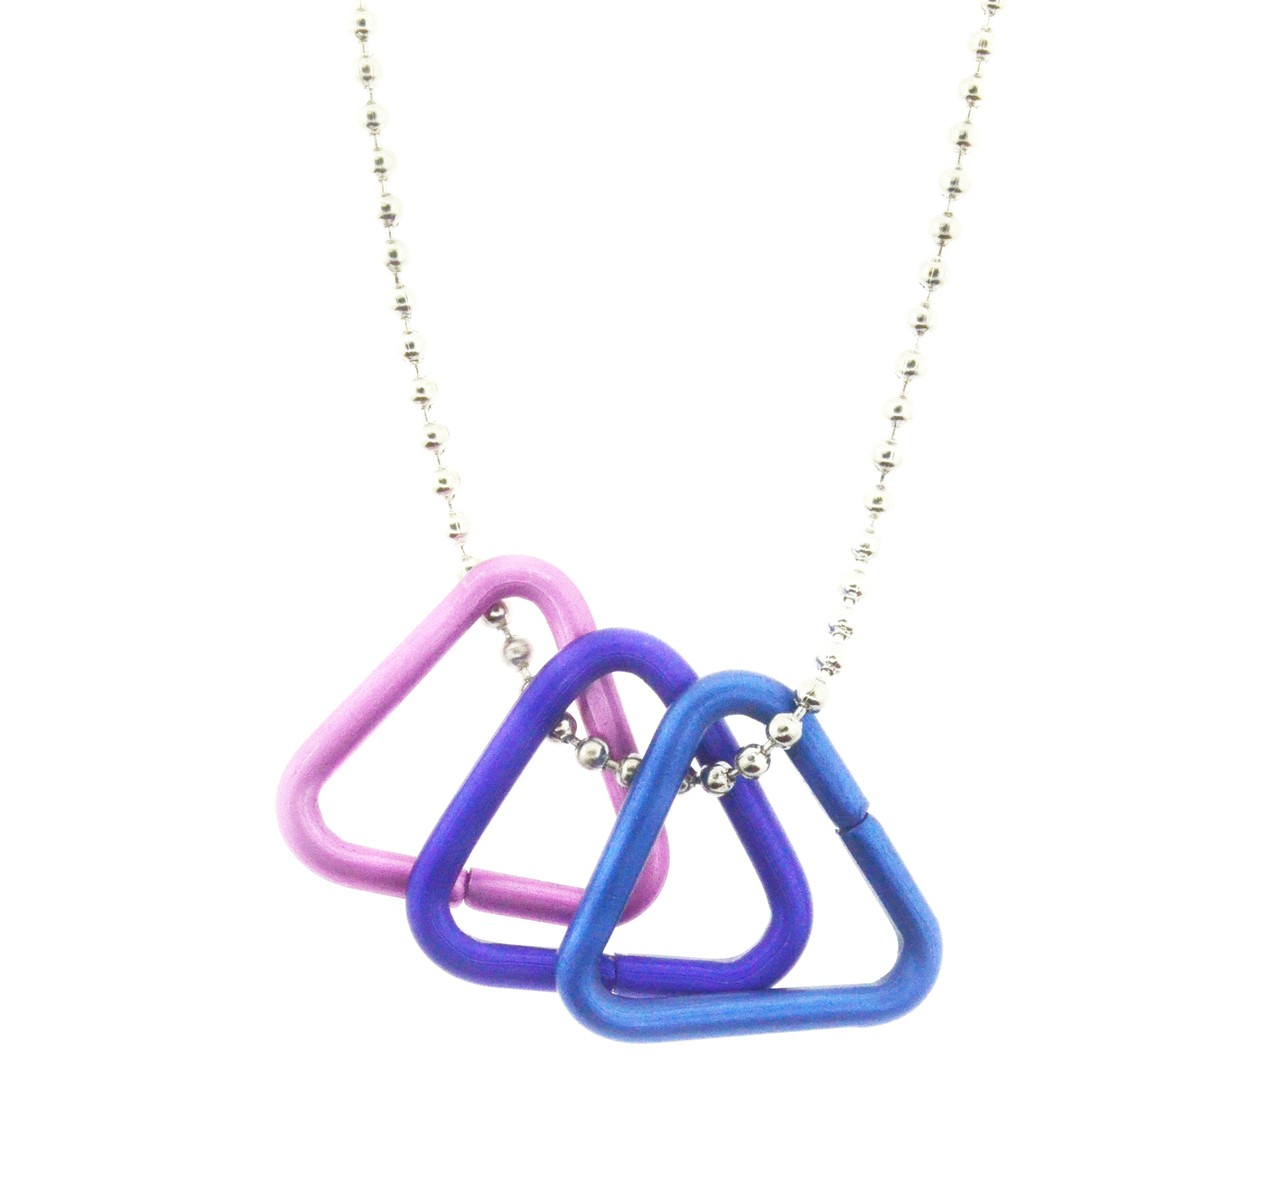 Bi Pride Freedom Triangle Necklace - Bisexual LGBT...